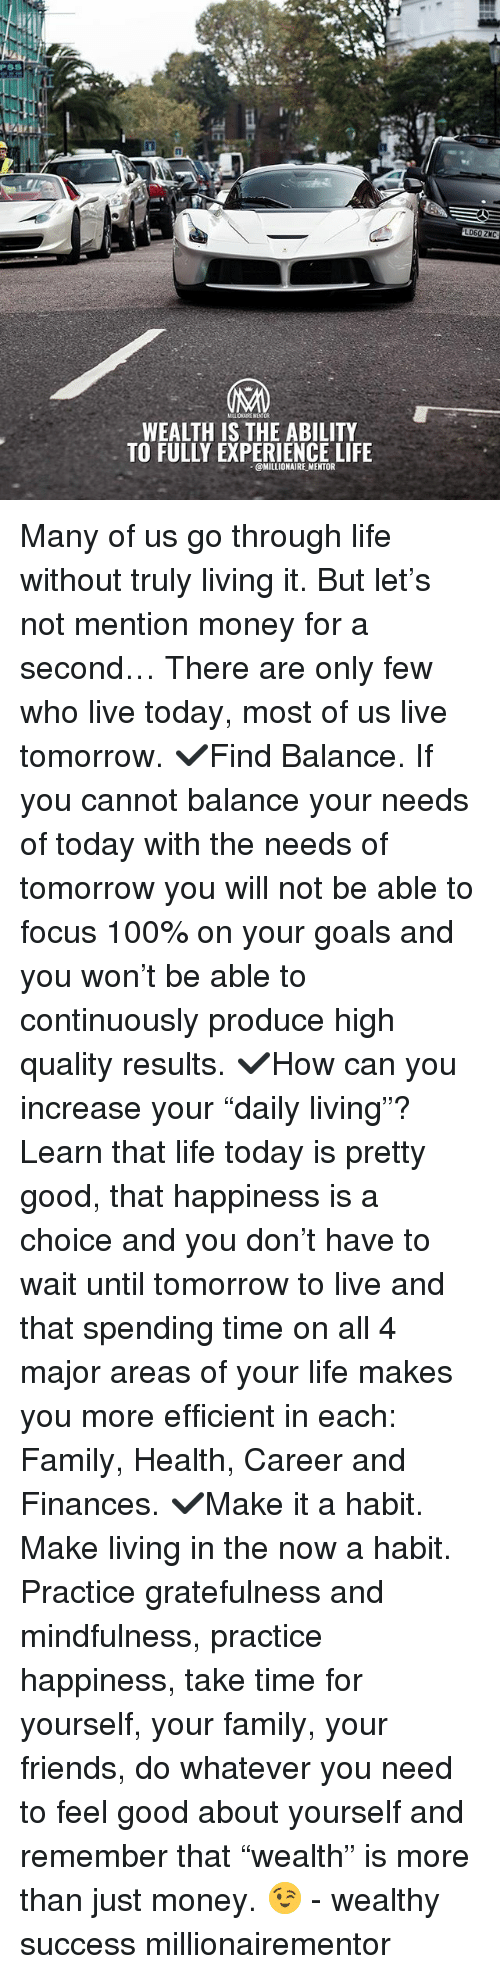 """Anaconda, Family, and Friends: PSS  LD60 ZKC  WEALTH IS THE ABILITY  TO FULLY EXPERIENCE LIFE  @MILLIONAIRE MENTOR Many of us go through life without truly living it. But let's not mention money for a second… There are only few who live today, most of us live tomorrow. ✔️Find Balance. If you cannot balance your needs of today with the needs of tomorrow you will not be able to focus 100% on your goals and you won't be able to continuously produce high quality results. ✔️How can you increase your """"daily living""""? Learn that life today is pretty good, that happiness is a choice and you don't have to wait until tomorrow to live and that spending time on all 4 major areas of your life makes you more efficient in each: Family, Health, Career and Finances. ✔️Make it a habit. Make living in the now a habit. Practice gratefulness and mindfulness, practice happiness, take time for yourself, your family, your friends, do whatever you need to feel good about yourself and remember that """"wealth"""" is more than just money. 😉 - wealthy success millionairementor"""